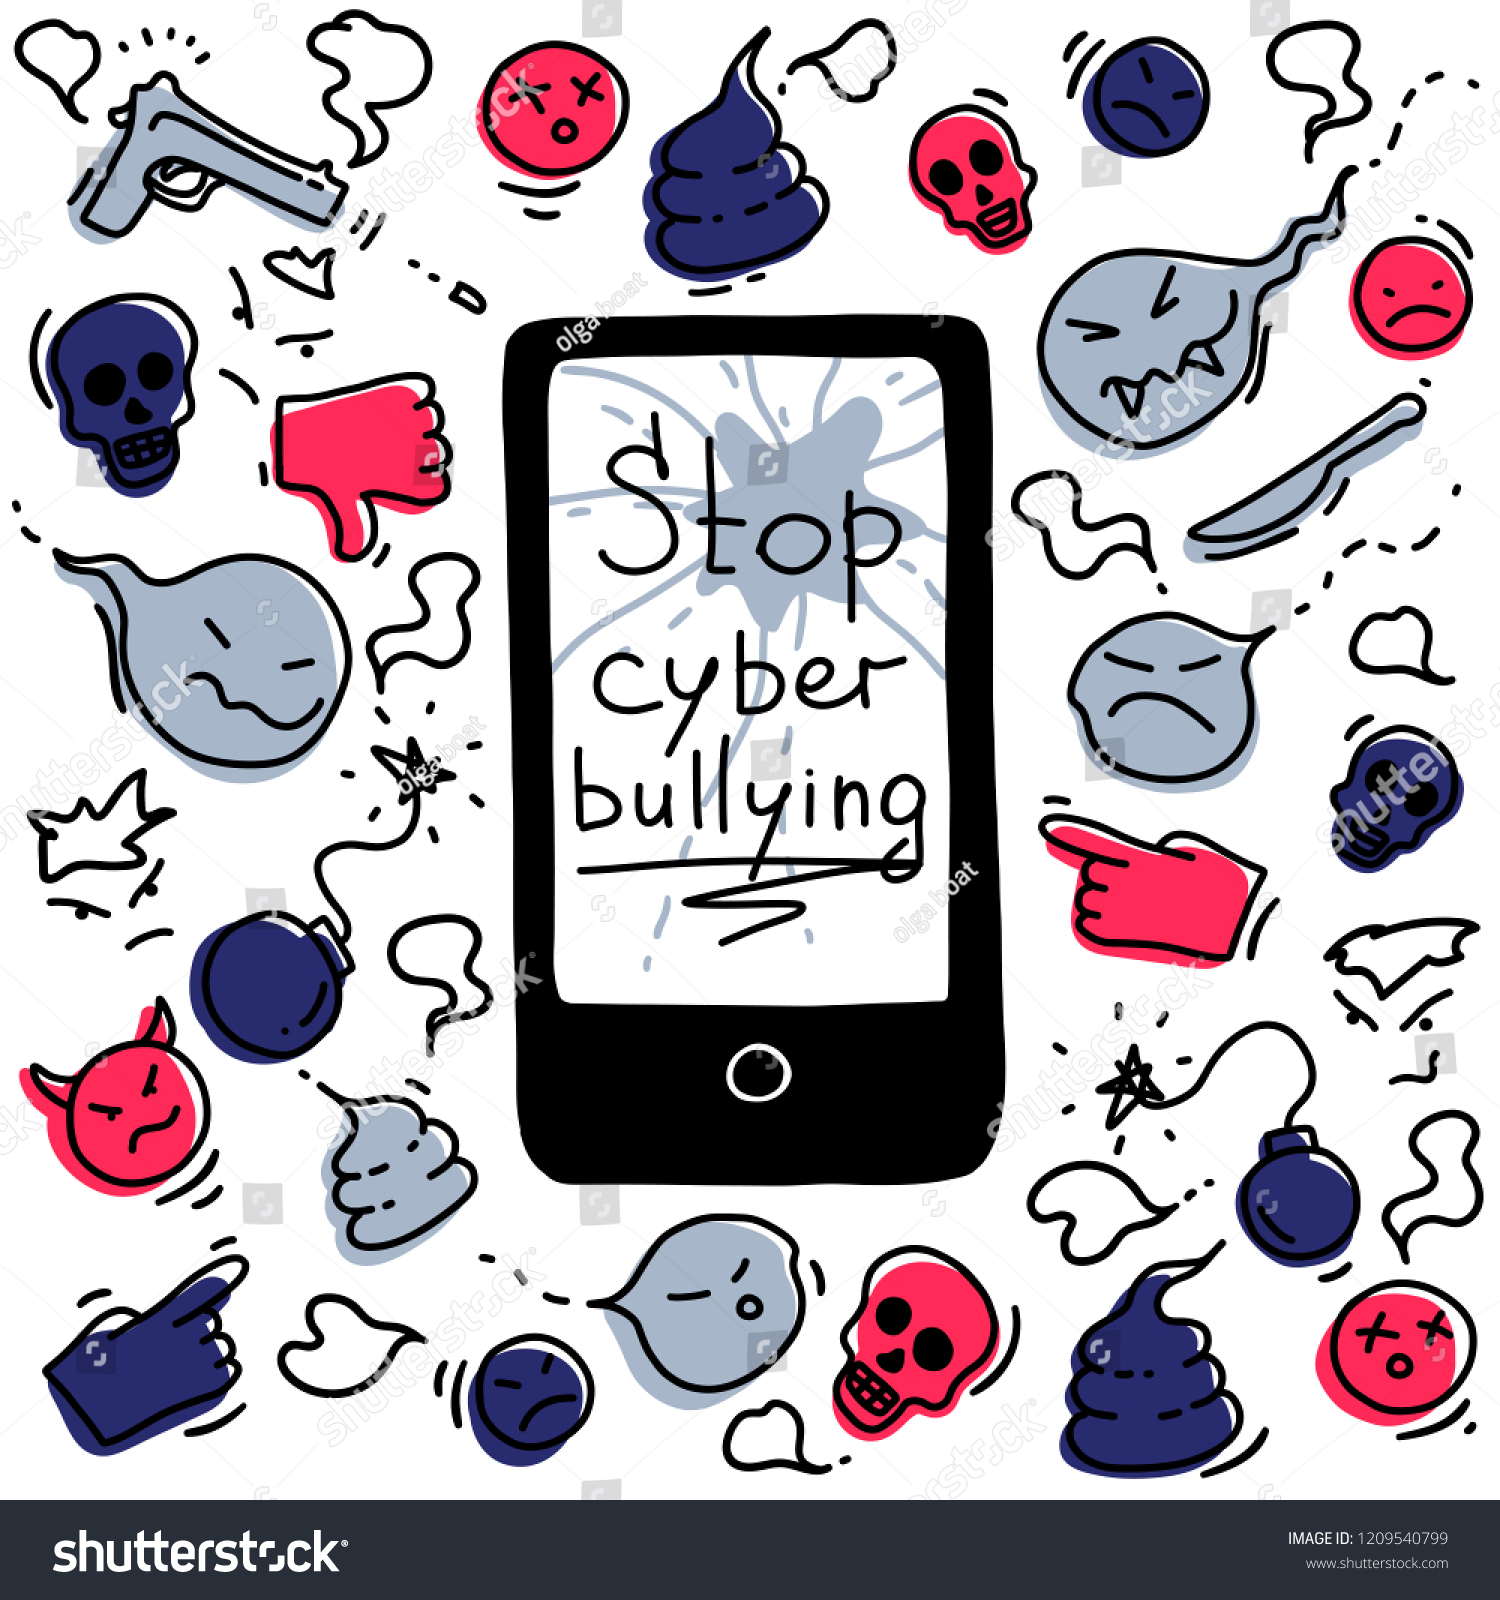 hight resolution of the concept of cyberbullying through the internet come unfriendly scornful messages problems in social